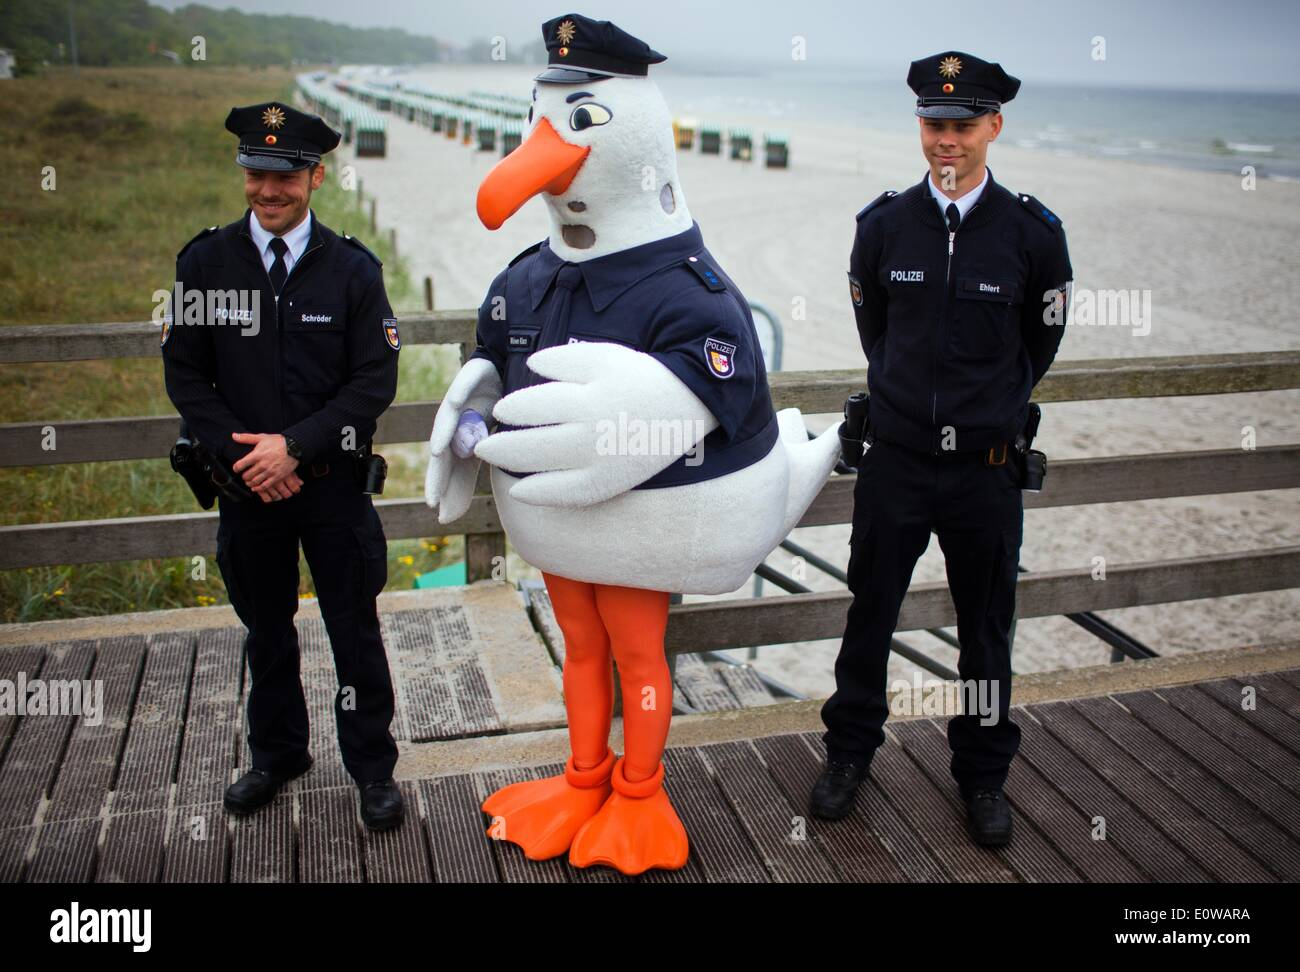 Boltenhagen, Germany. 19th May, 2014. Police seagull 'Klara' stands between police officers Ehlert (R) and Schroeder (L) on the pier on the occasion of the start of the tourist season in Boltenhagen, Germany, 19 May 2014. 80 additional police officers have been detailed, bringing the total number of police officers patrolling the promenades, camping sites and events at the touristic centres in Mecklenburg-Western Pomerania to 200. Photo: Jens Buettner/dpa/Alamy Live News - Stock Image